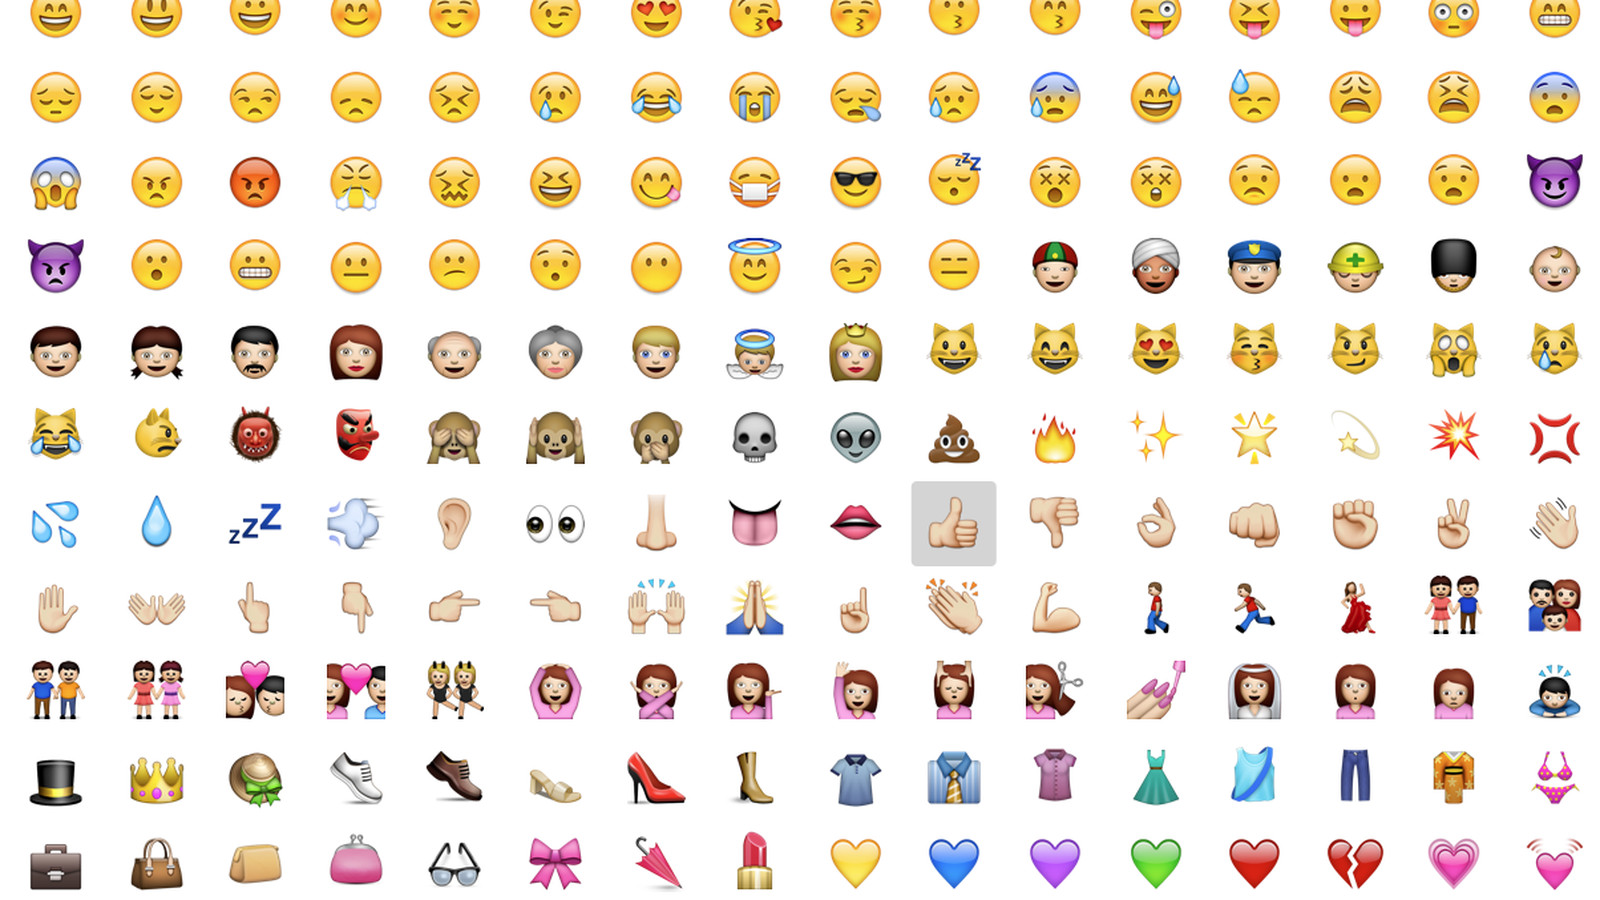 Emoticons Cute Wallpaper Is There A More Fundamental Human Question Than Why Isn T